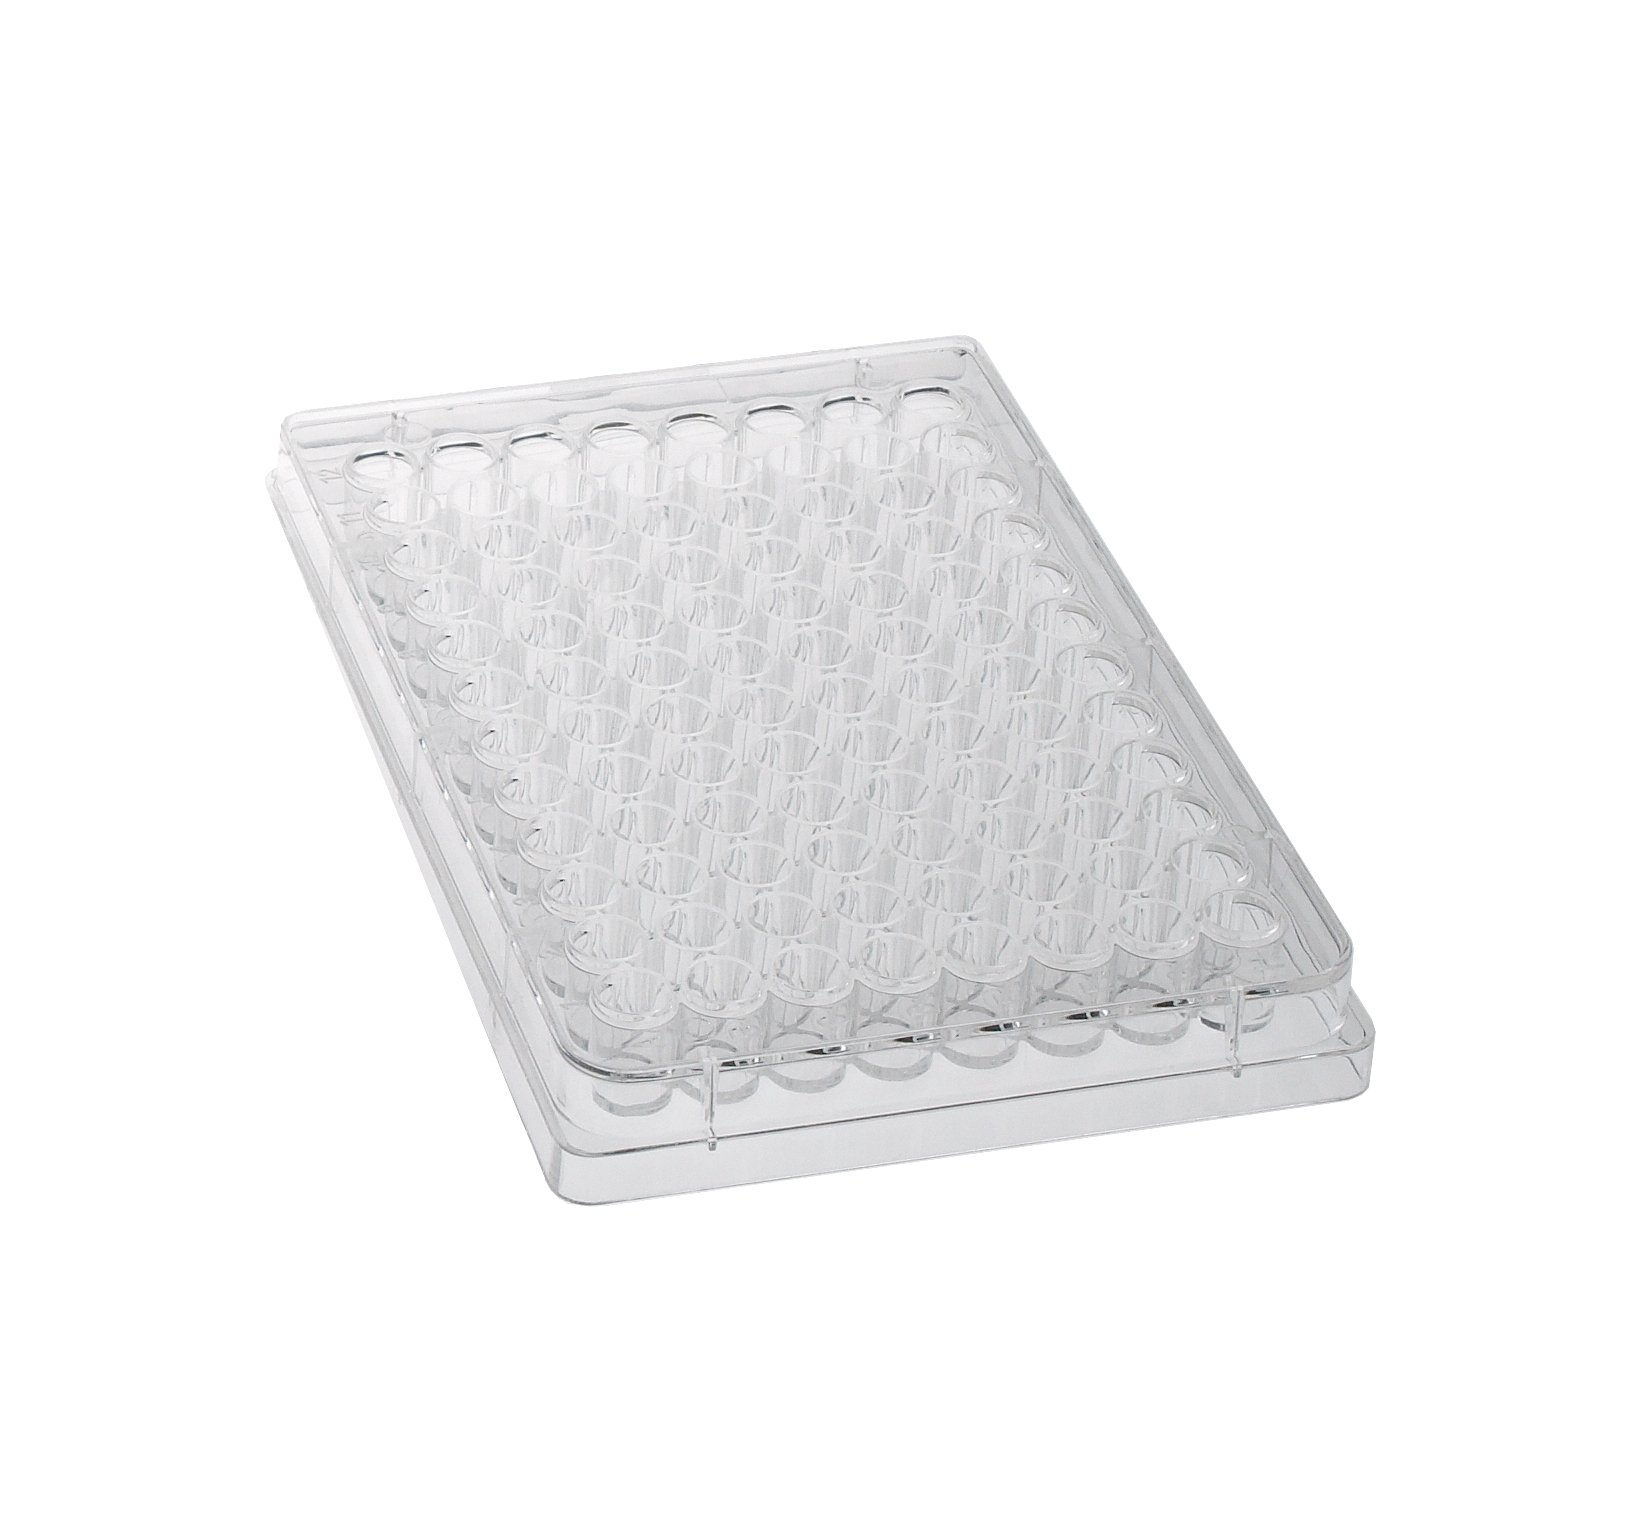 Celltreat CLS-3500-R96 Glass Round Bottom Sterile TC-Treated Plate with 96 Wells (Case of 100)